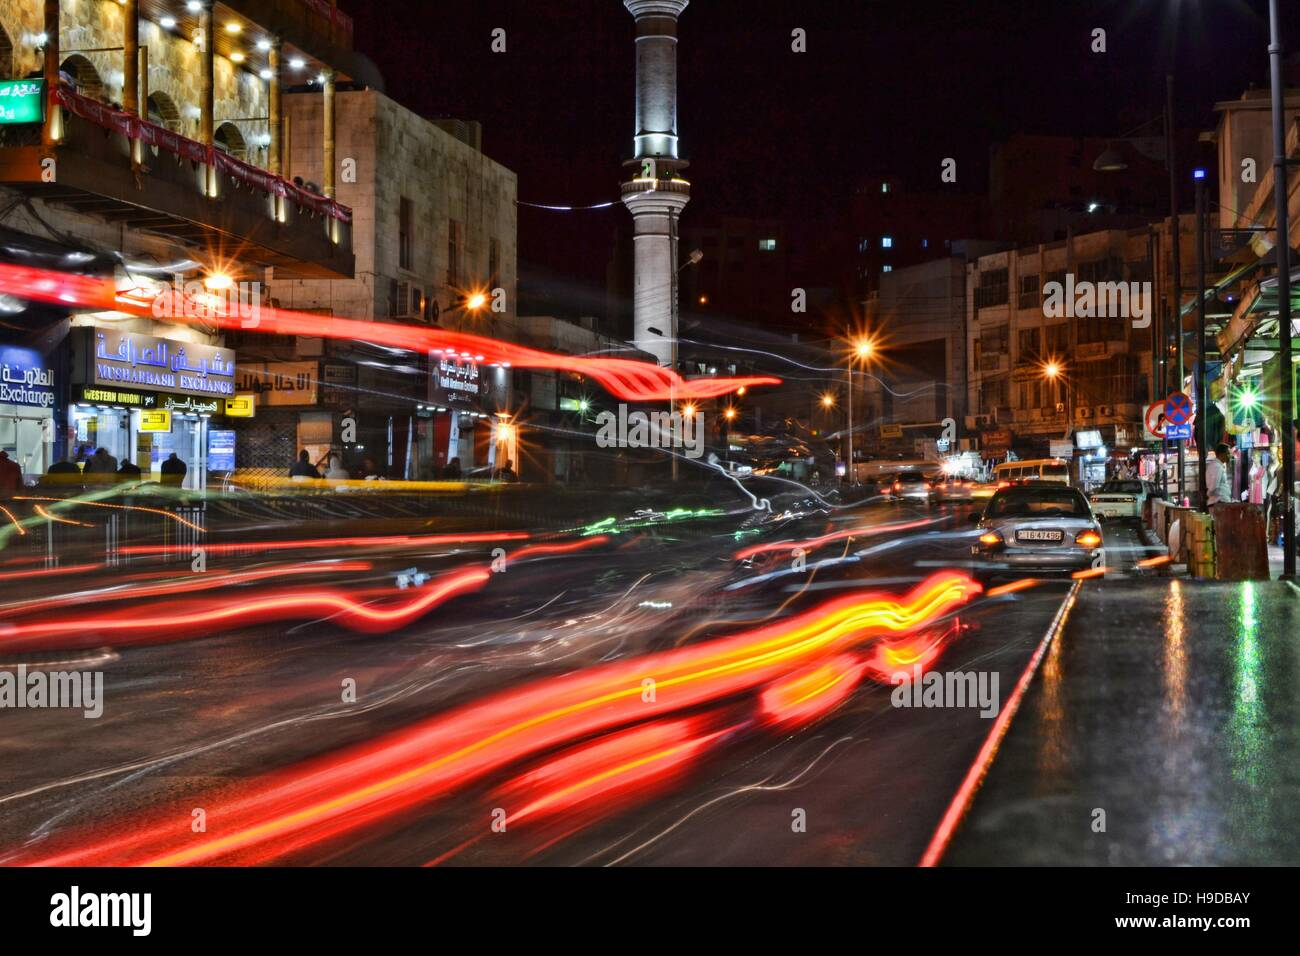 the madness of Amman's traffic, city lights and bazars - Stock Image